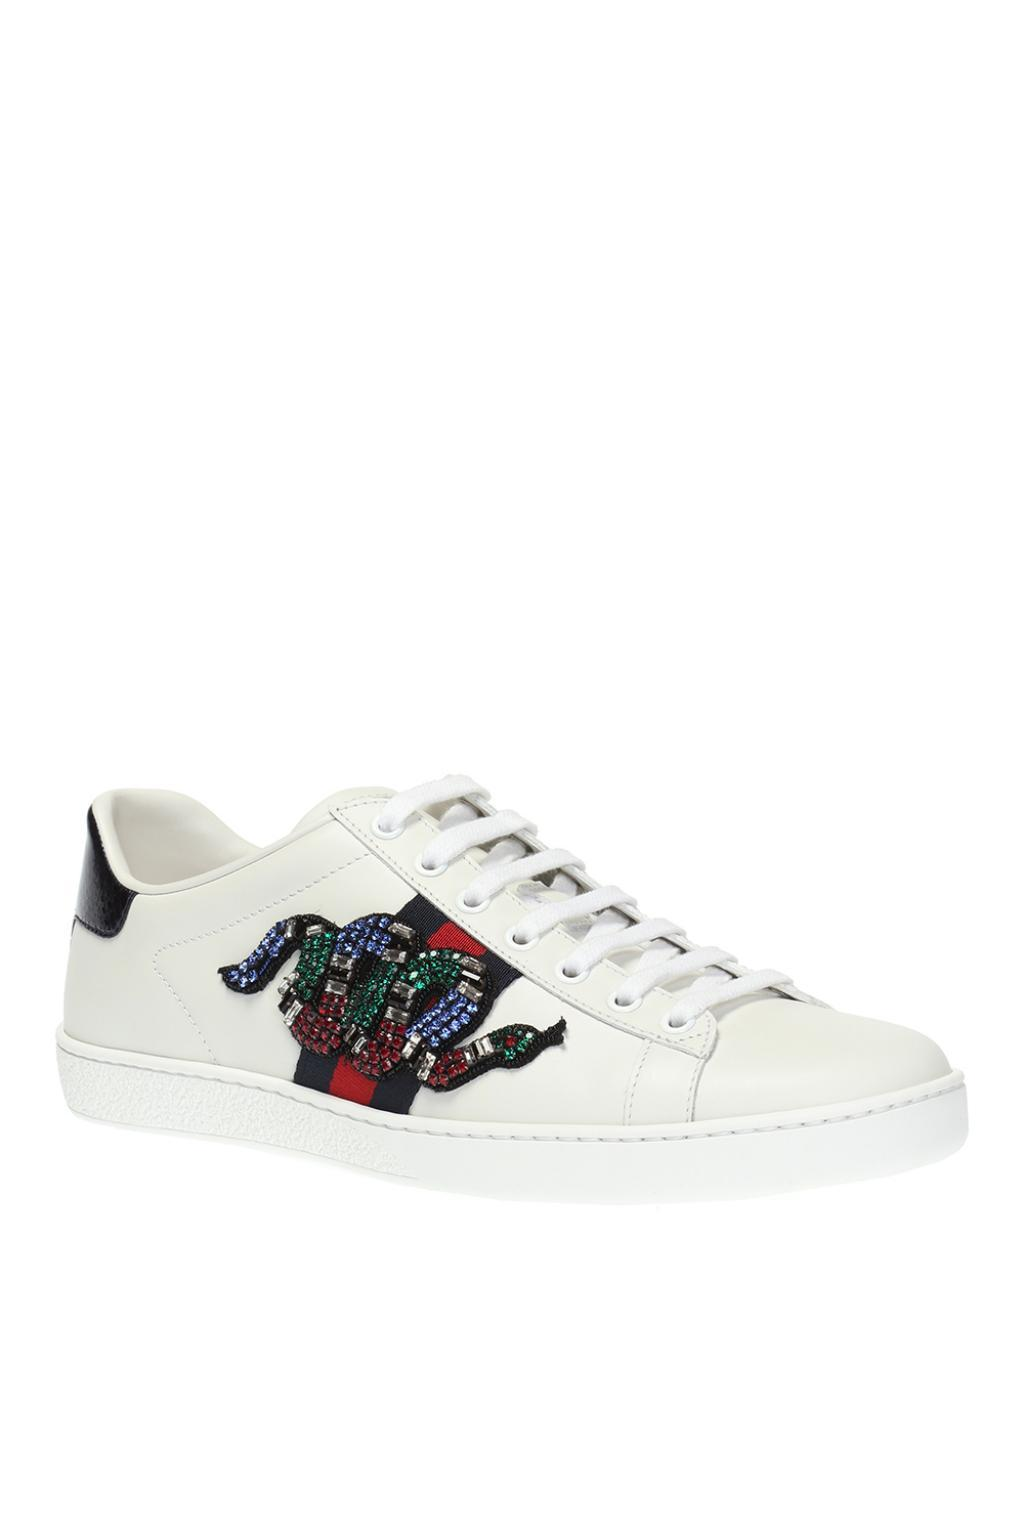 Gucci 'ace' Snake Motif Sneakers in